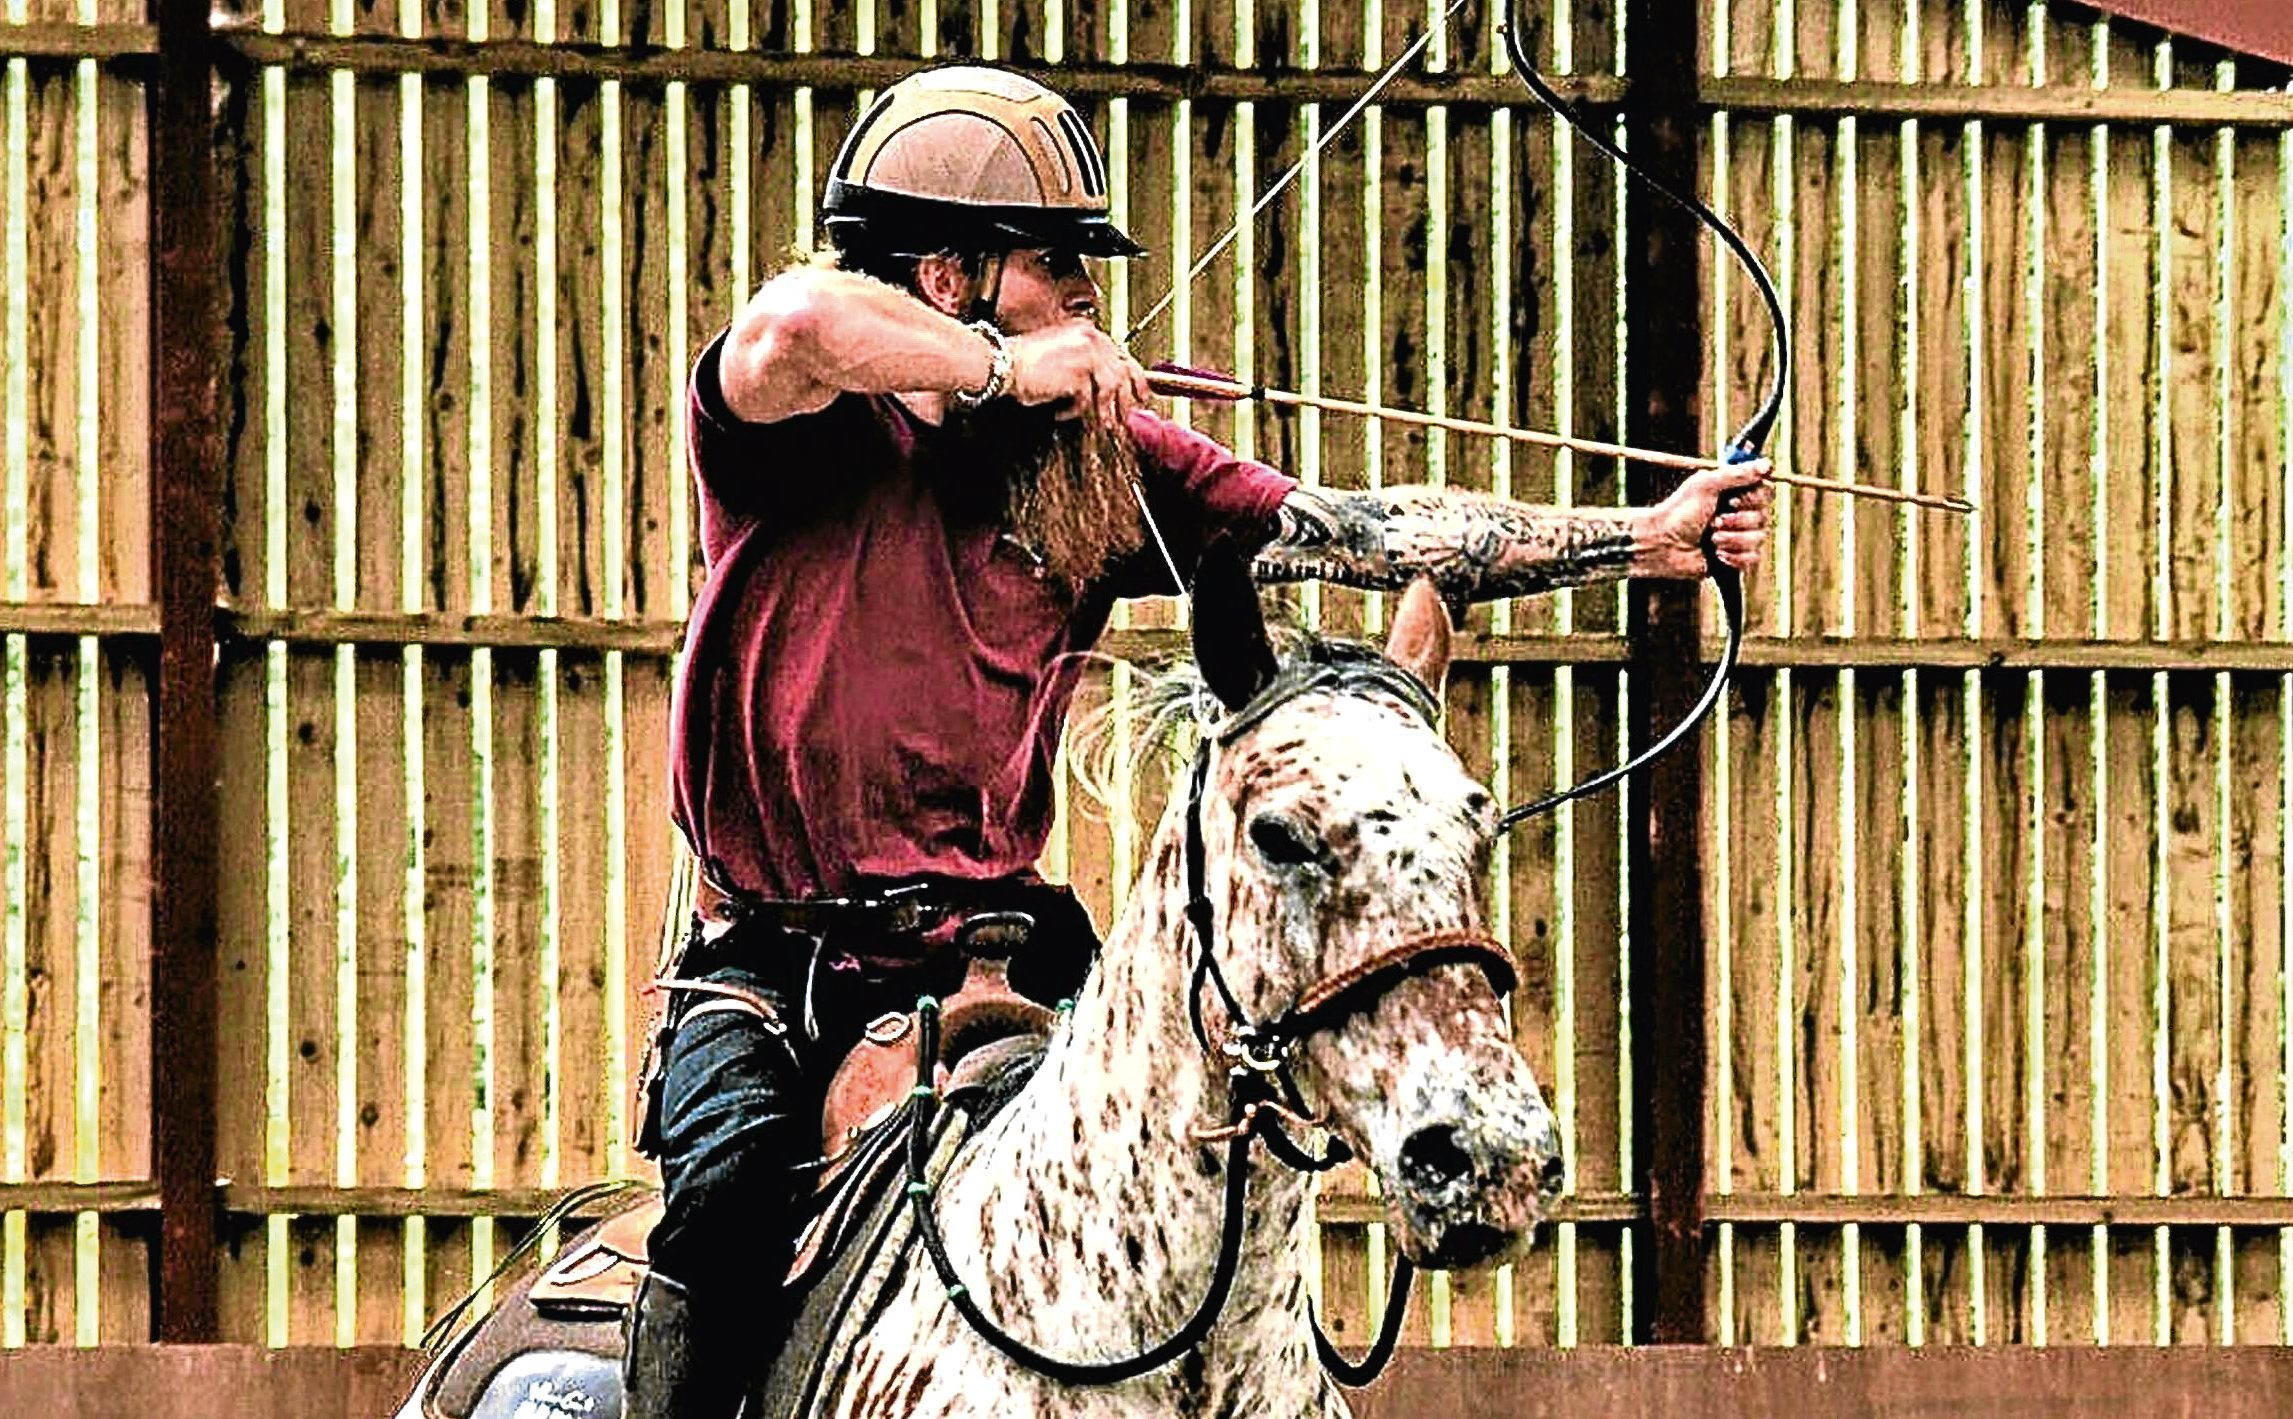 Mike Royall tries some horse archery in Aboyne.